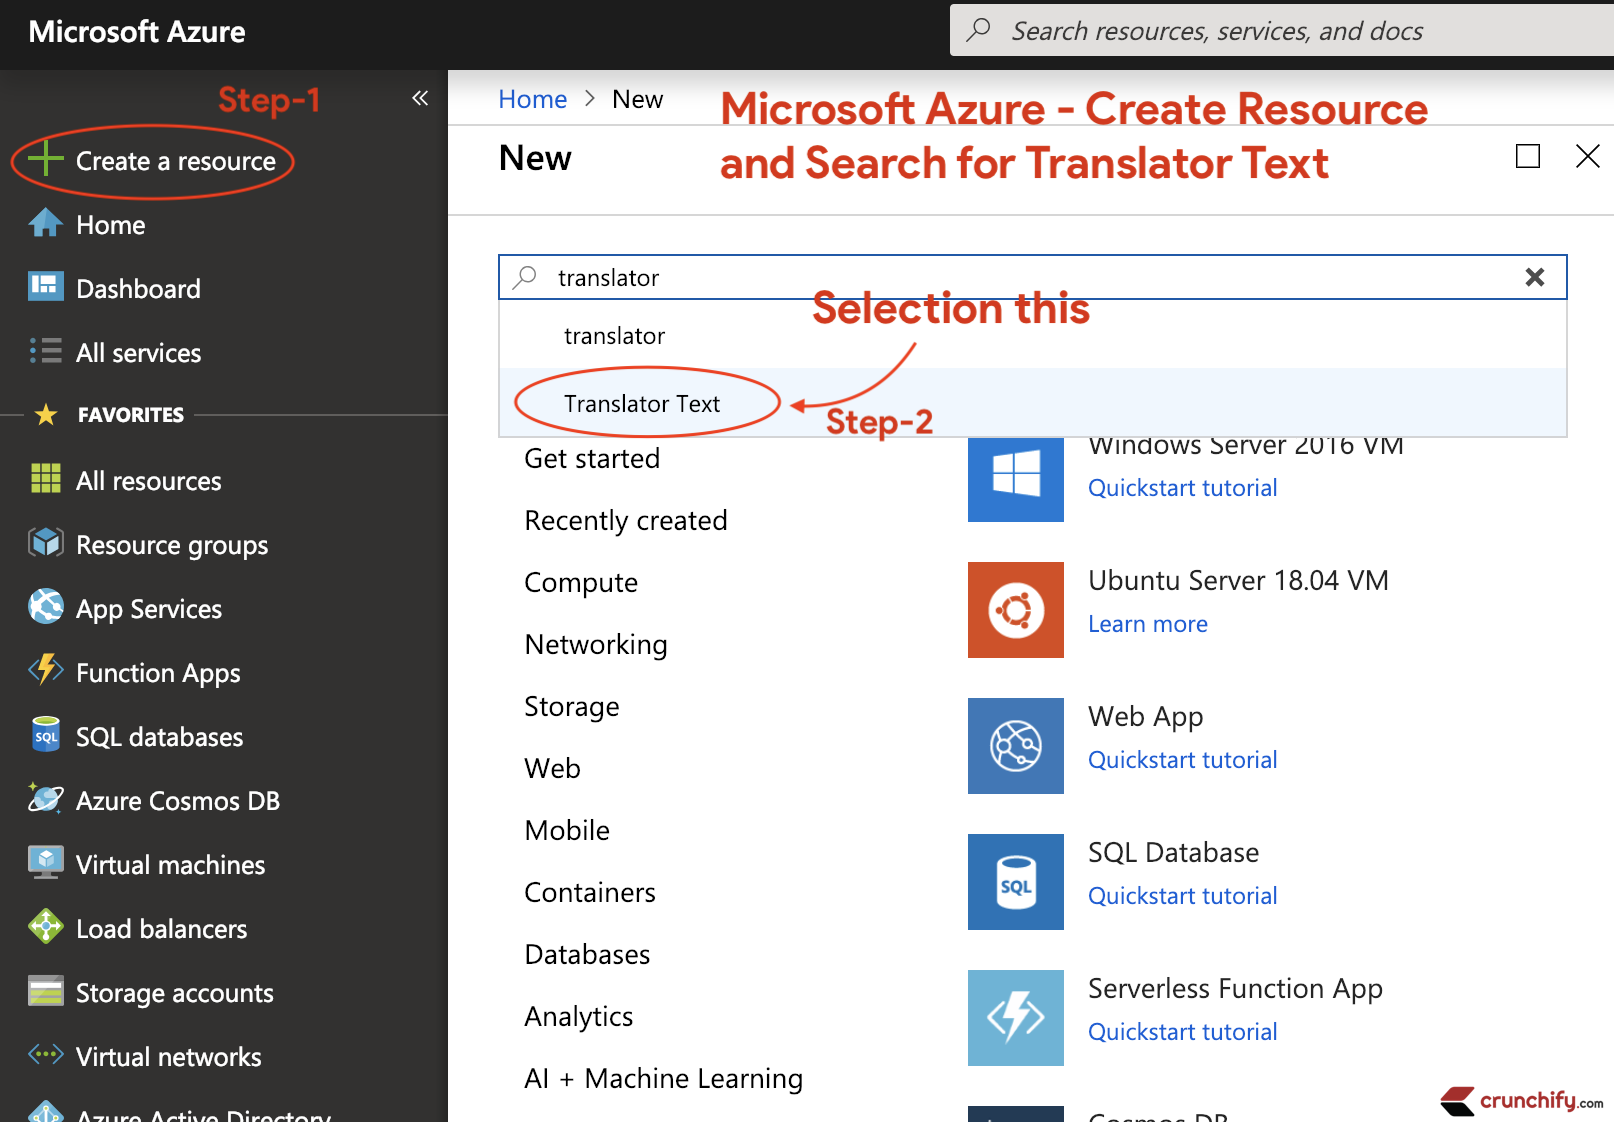 Microsoft Azure - Create Resource and Search for Translator Text